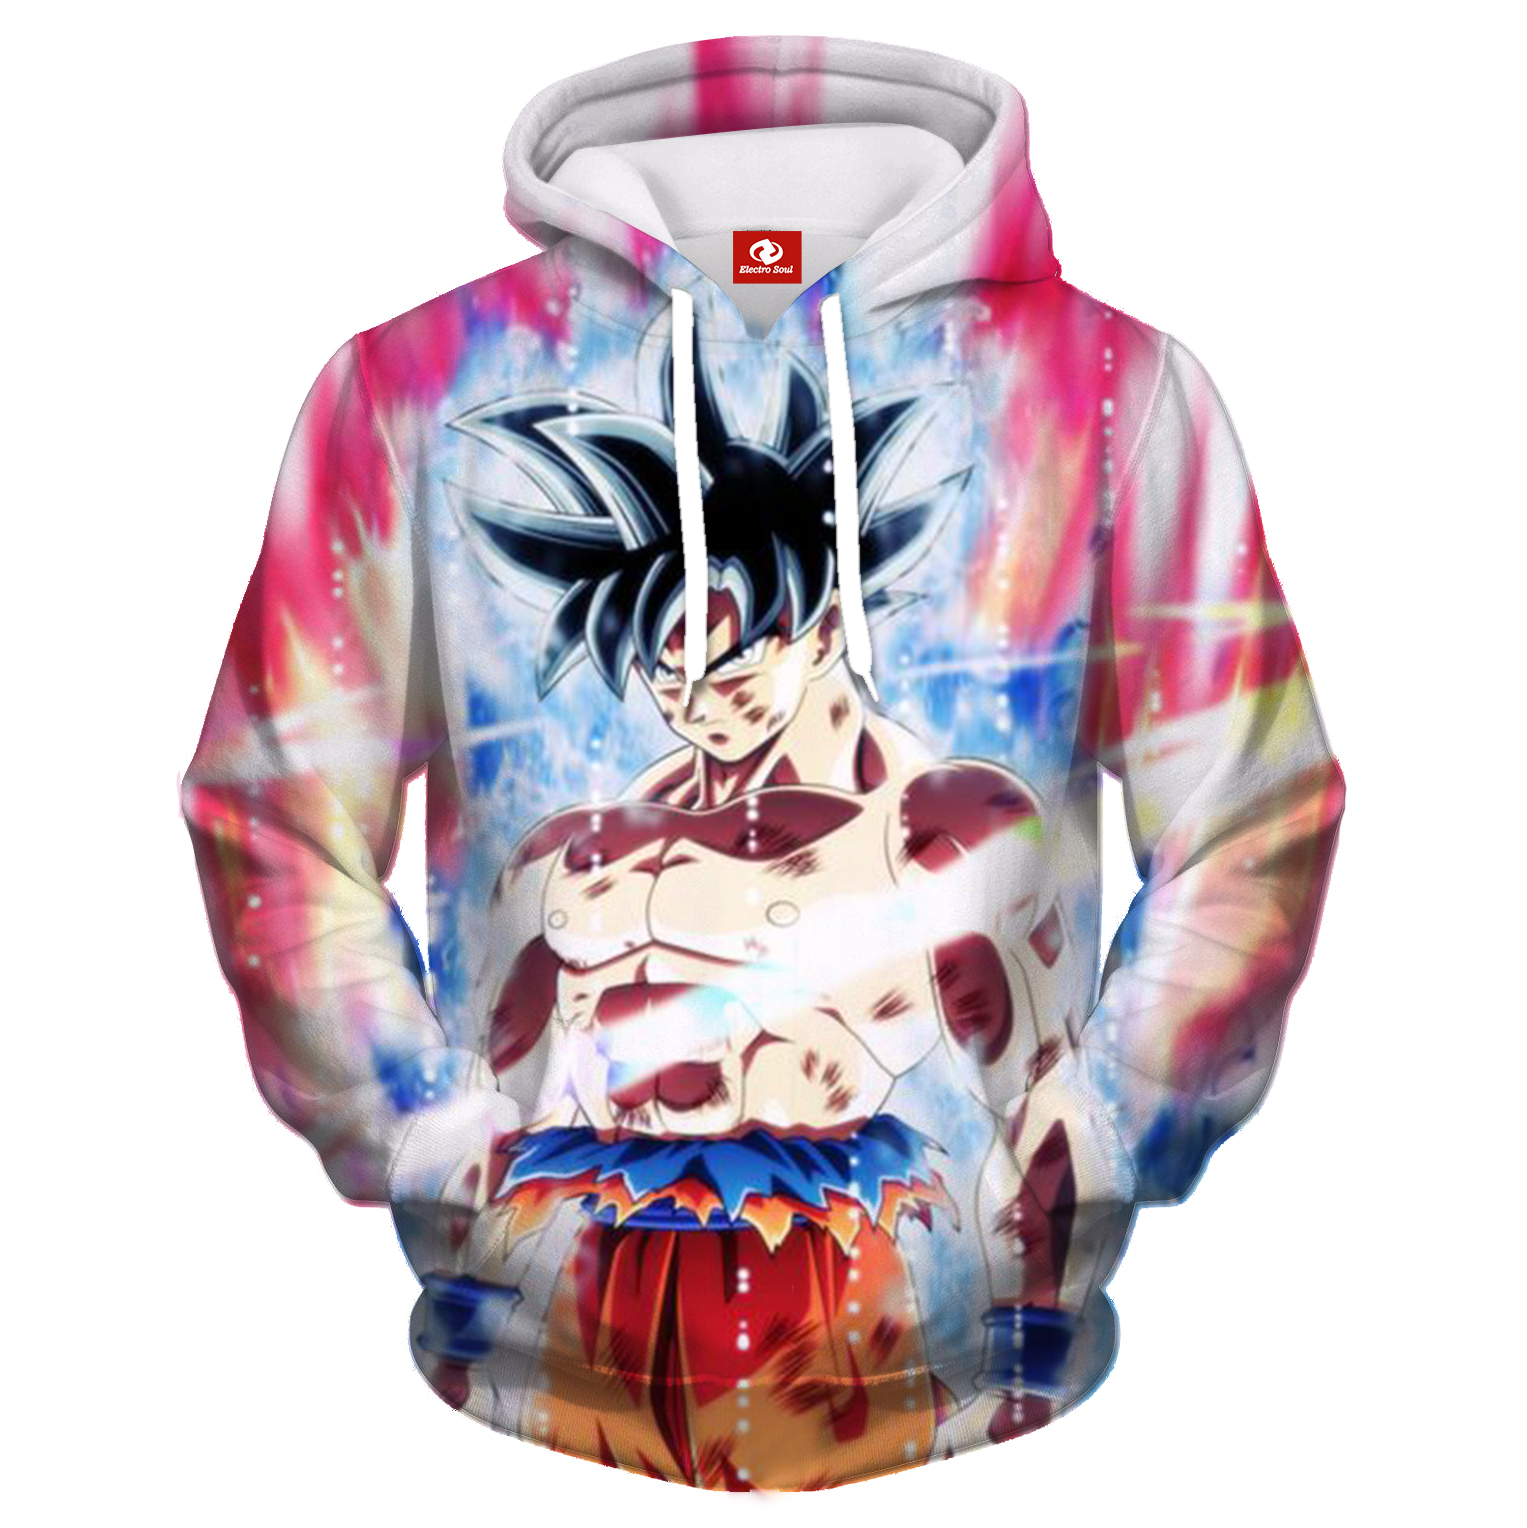 Electro Soul Thin Hooded Hoodies Tops Autumn Winter New 3d Print Hoodie Spider-man Cool Print Hoodie Hip Hop Fashion Style